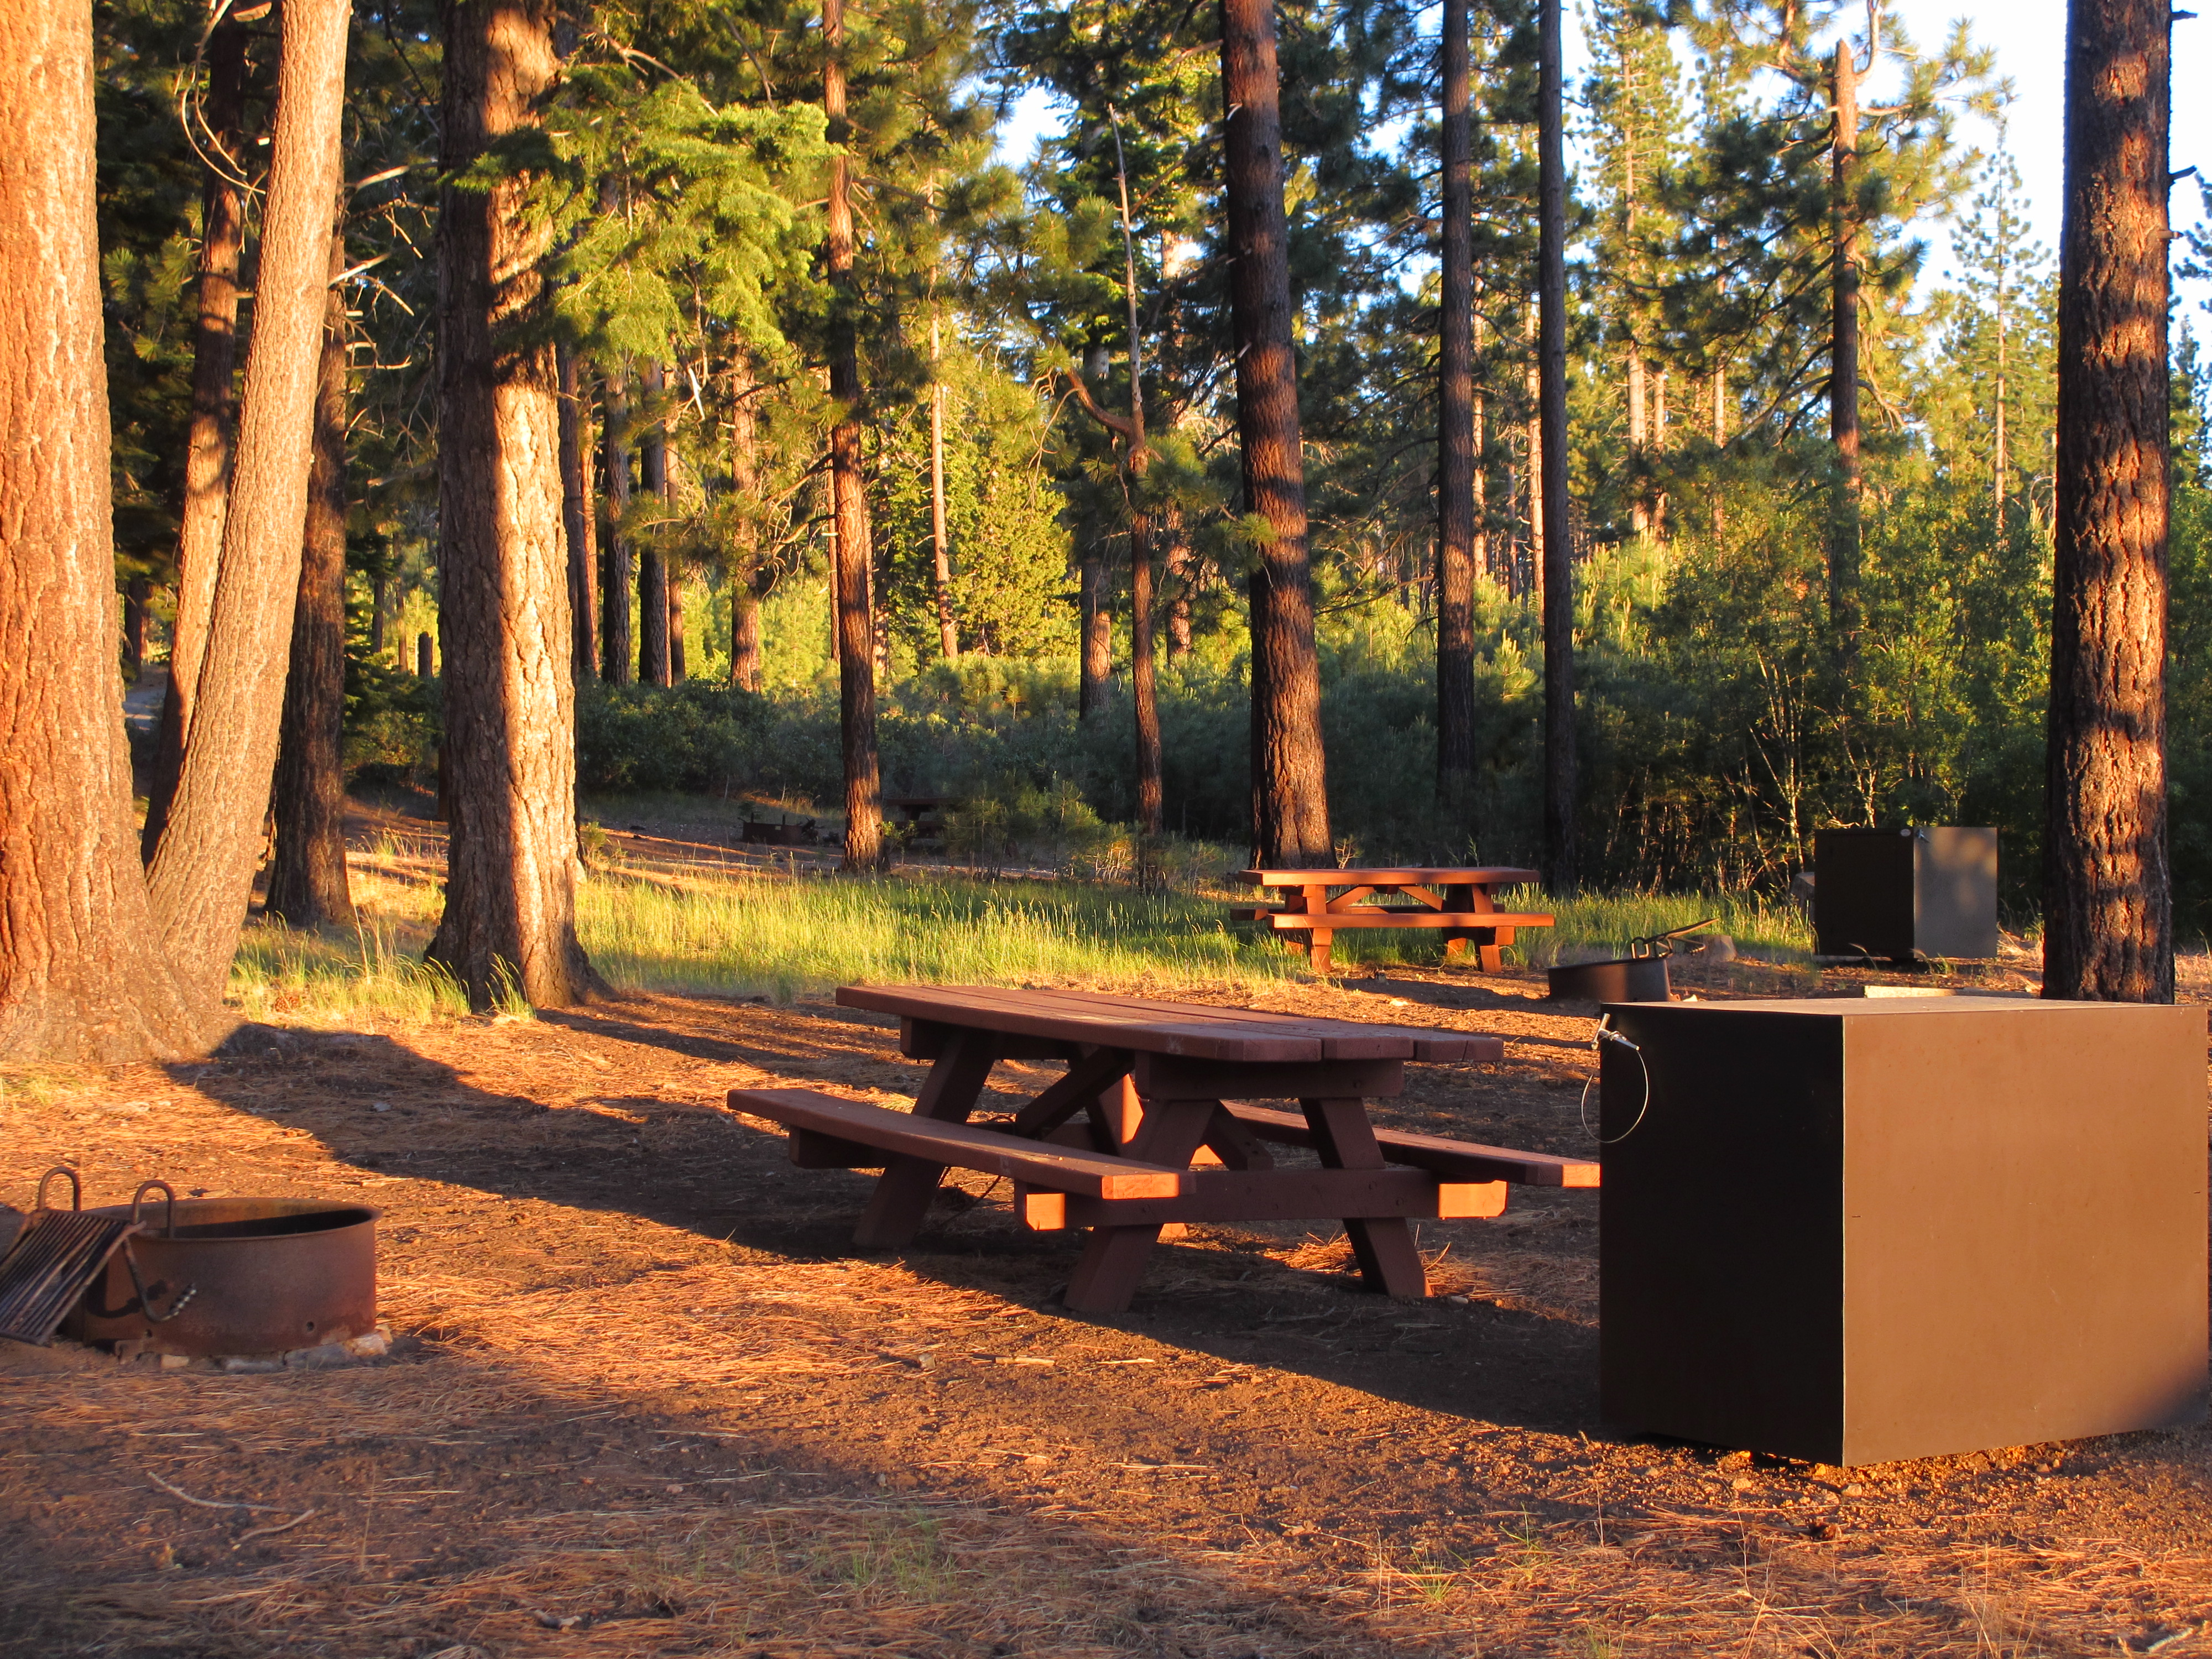 camping in the woods with a fire.  Camping Campsite With Picnic Table Fire Pit In Woods Throughout Camping In The Woods With A Fire A